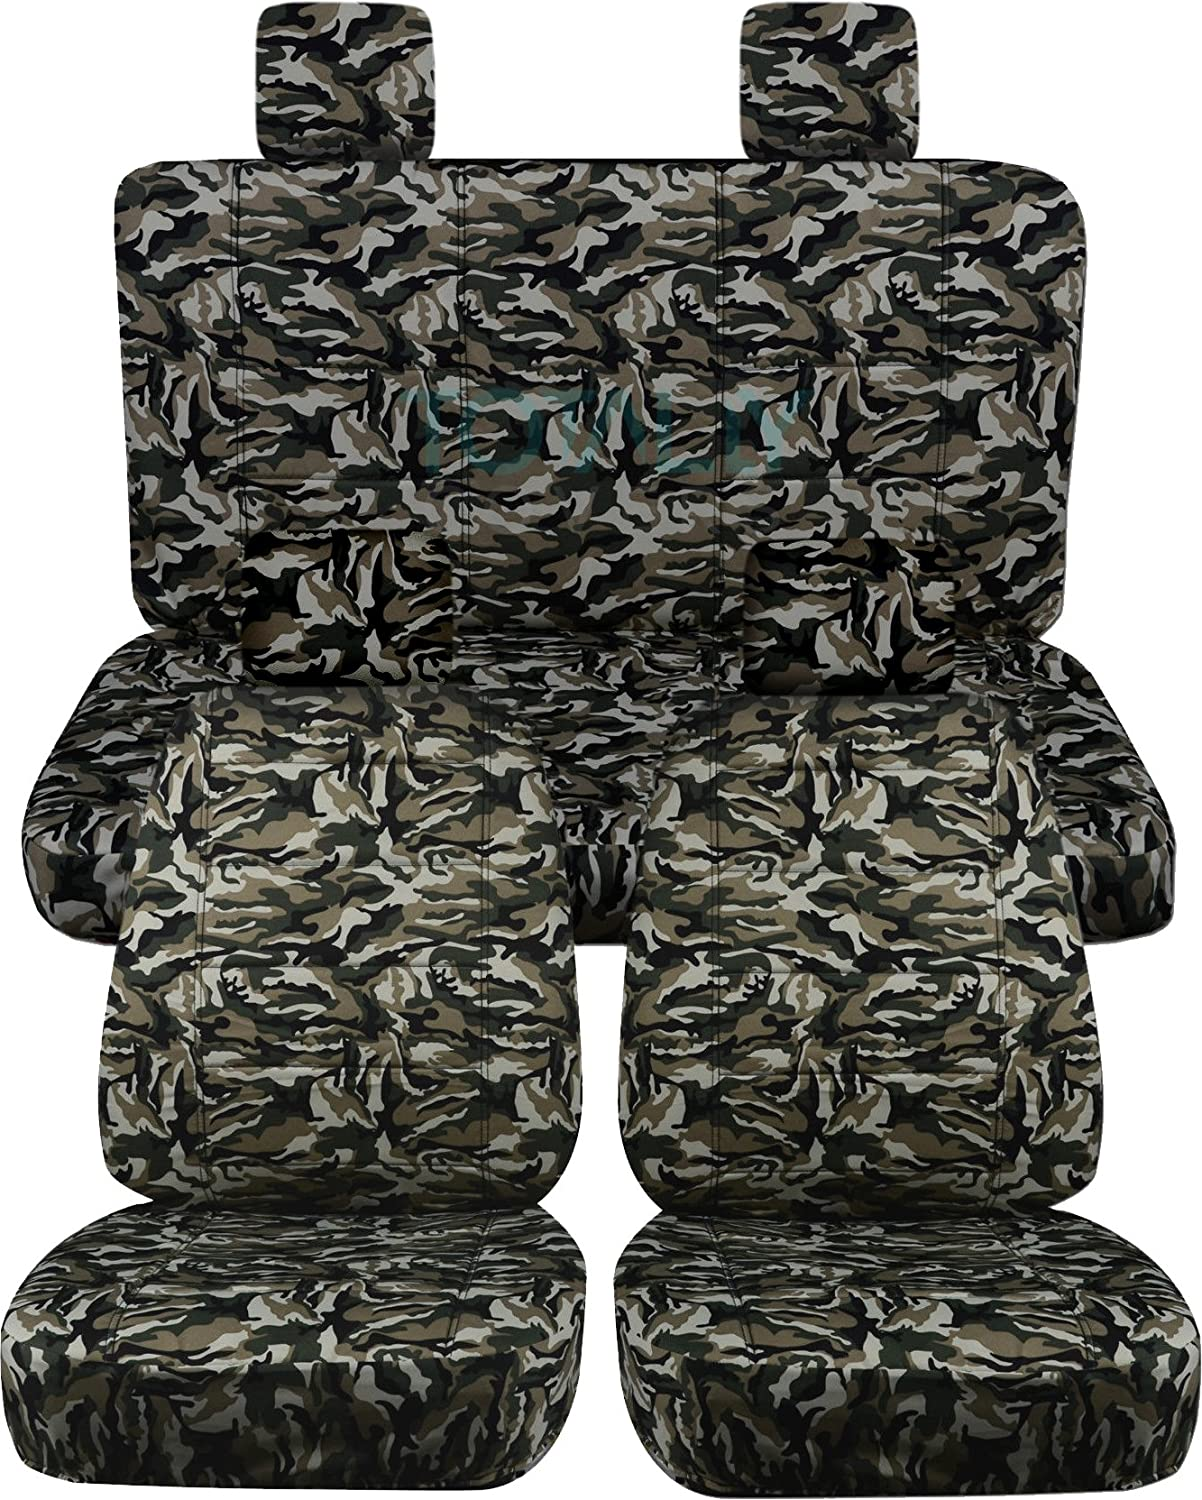 Totally Covers Compatible with 2007-2010 Jeep Wrangler JK Camo Seat Covers: Beige & Green Camouflage - Full Set: Front & Rear (19 Prints) 2-Door/4-Door Complete Back Solid/Split Bench